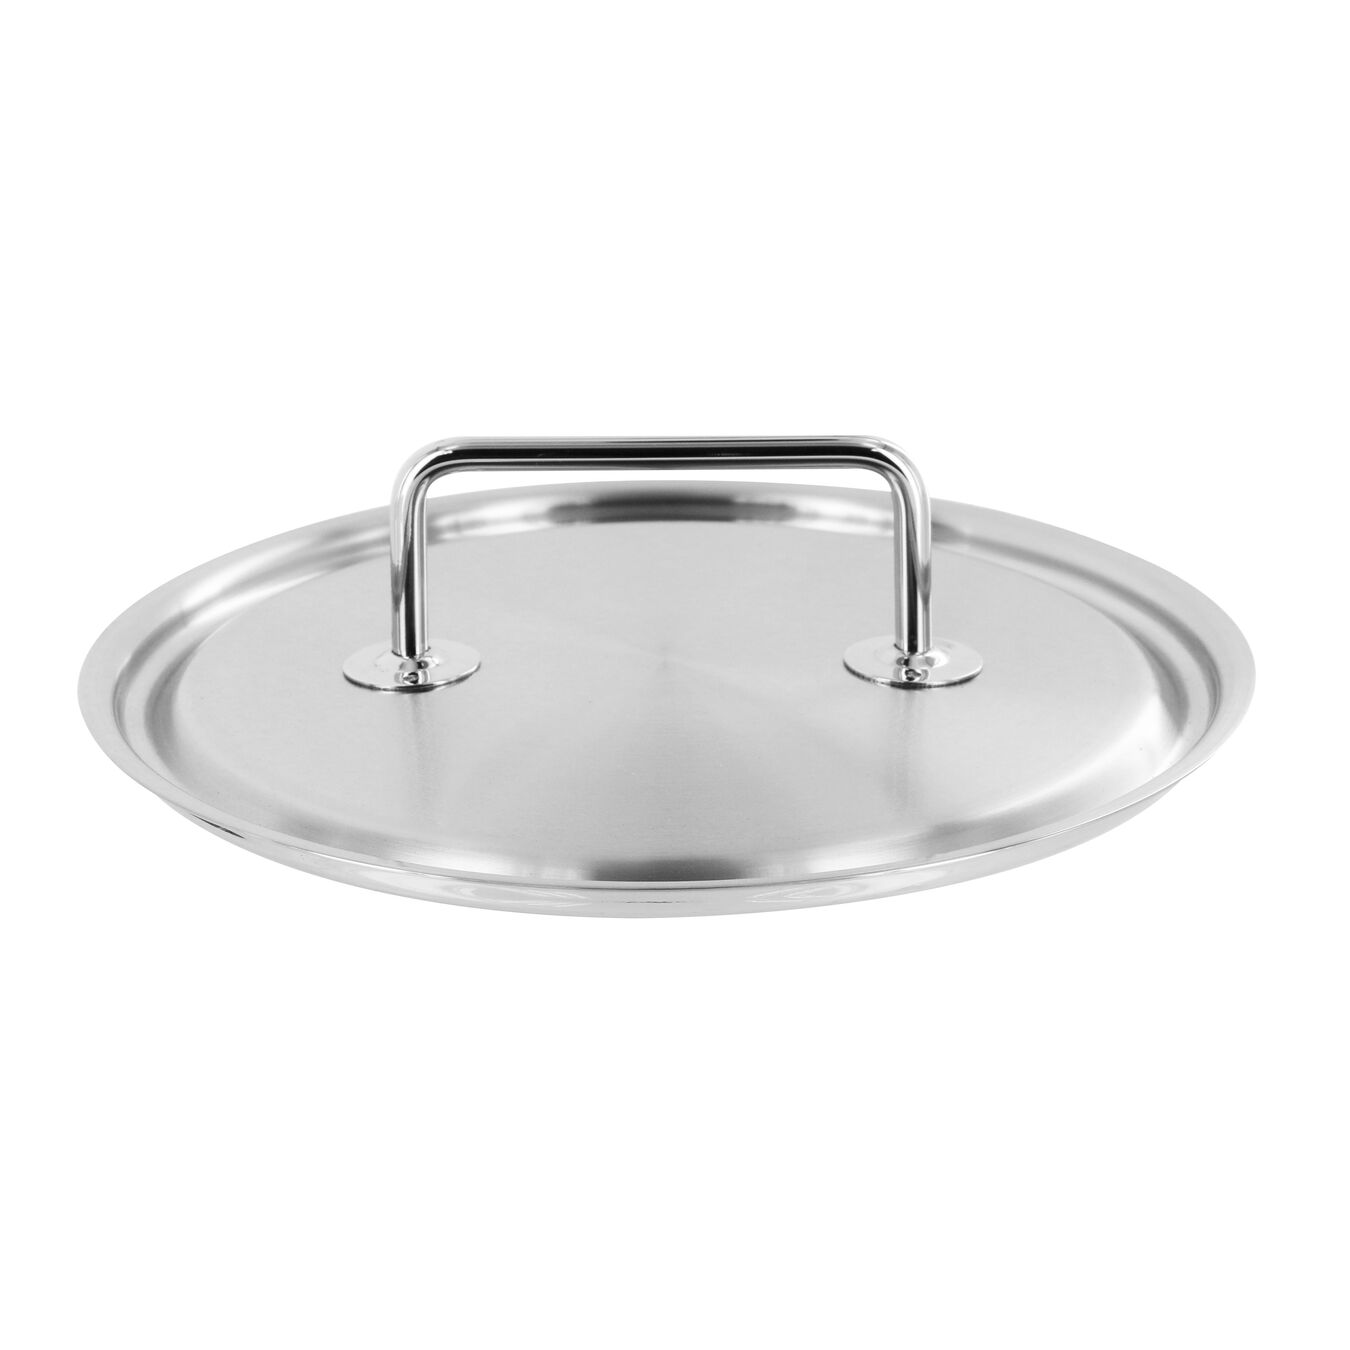 Couvercle, round | 18/10 Stainless Steel,,large 1